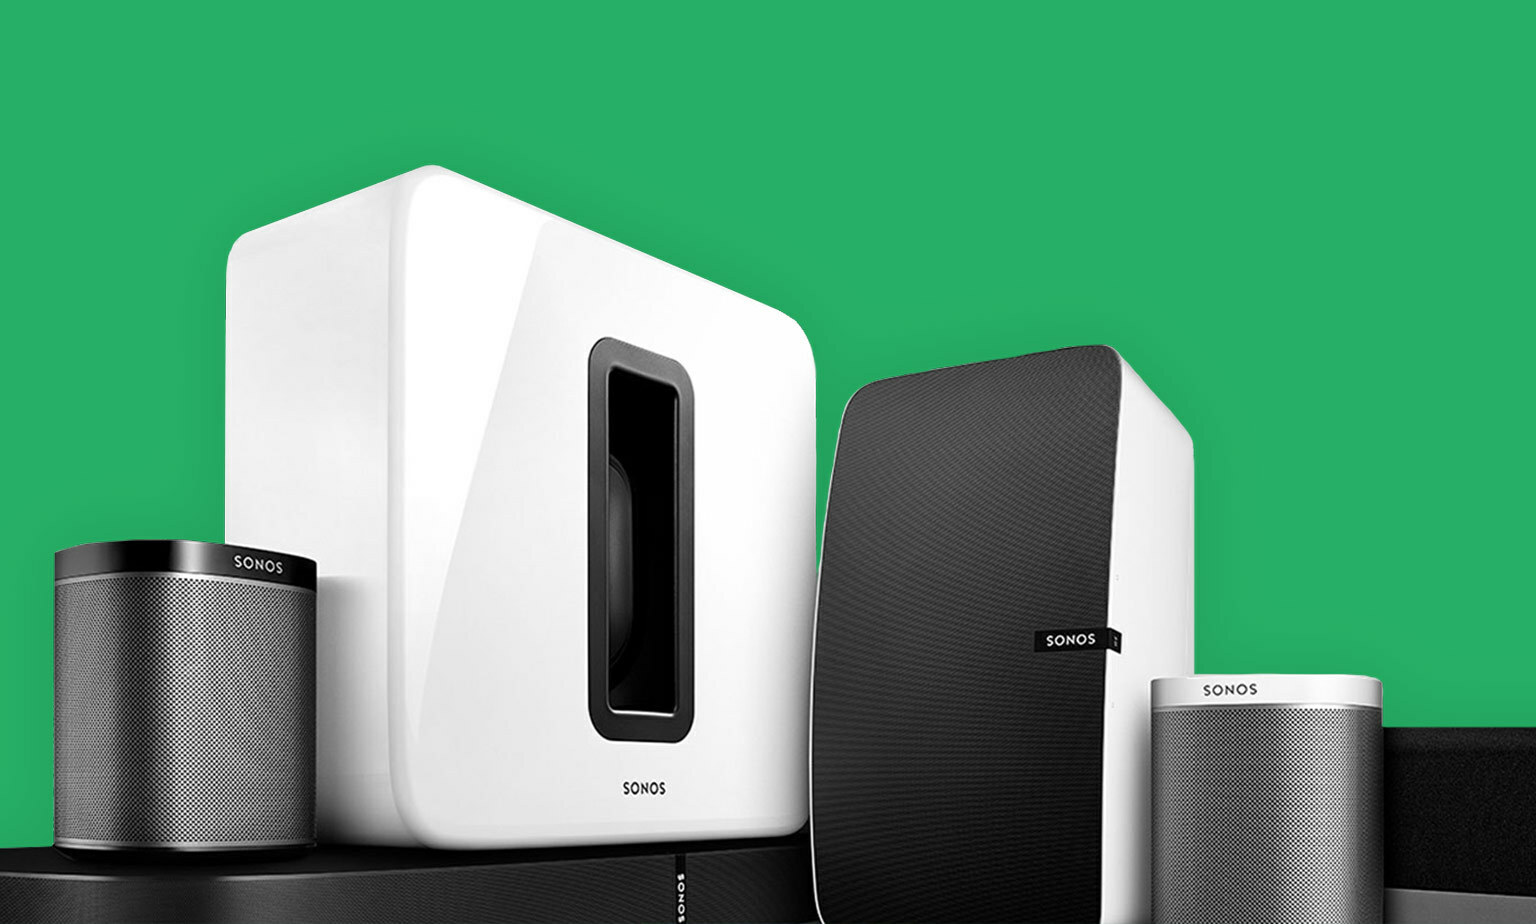 Sonos Home Audio Sound Systems